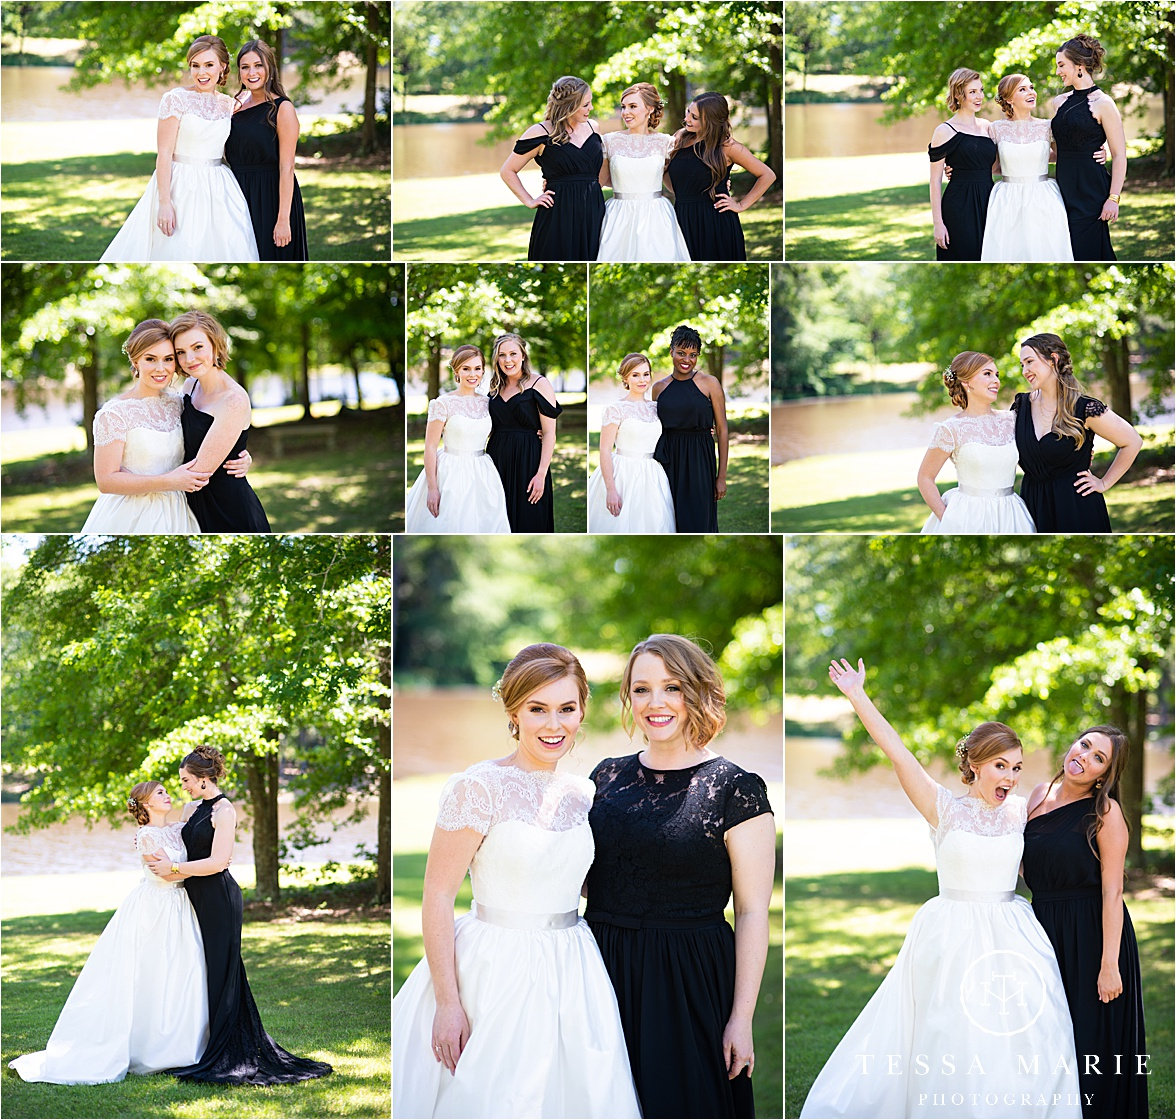 Tessa_marie_weddings_columbus_wedding_photographer_wedding_day_spring_outdoor_wedding_0026.jpg